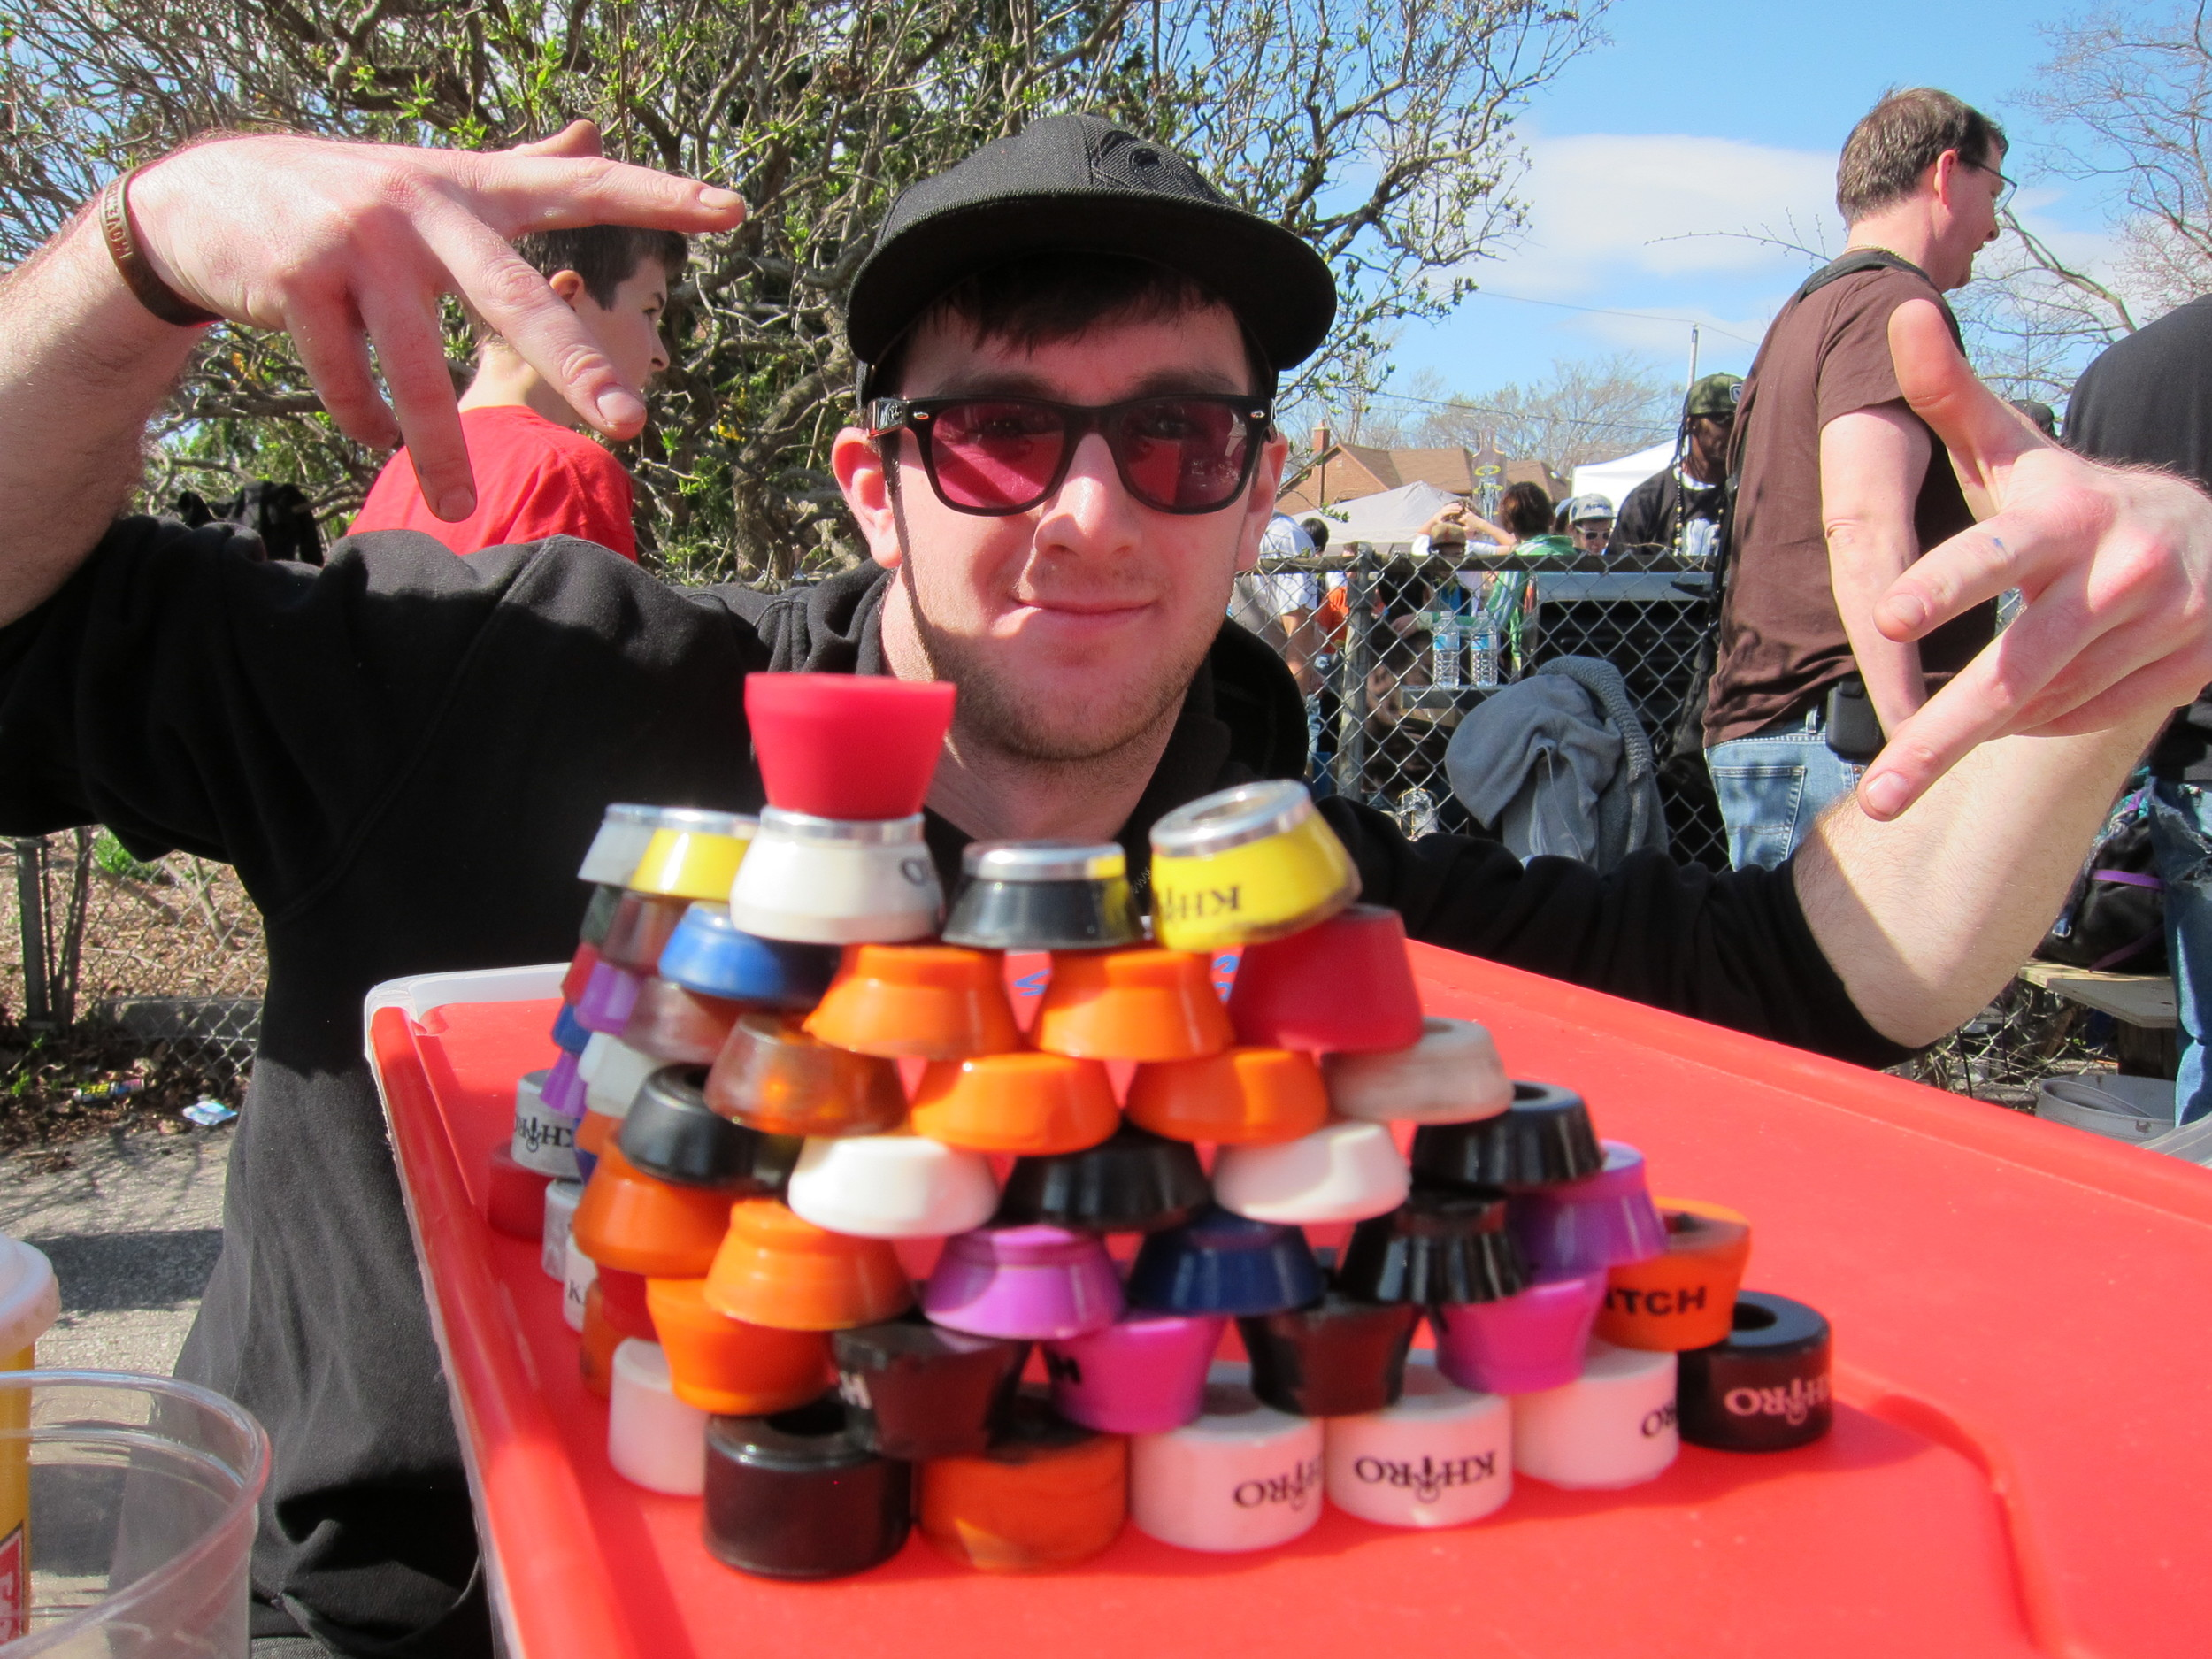 Bill with a mountain of bushings. Photo - Ponyta 2012